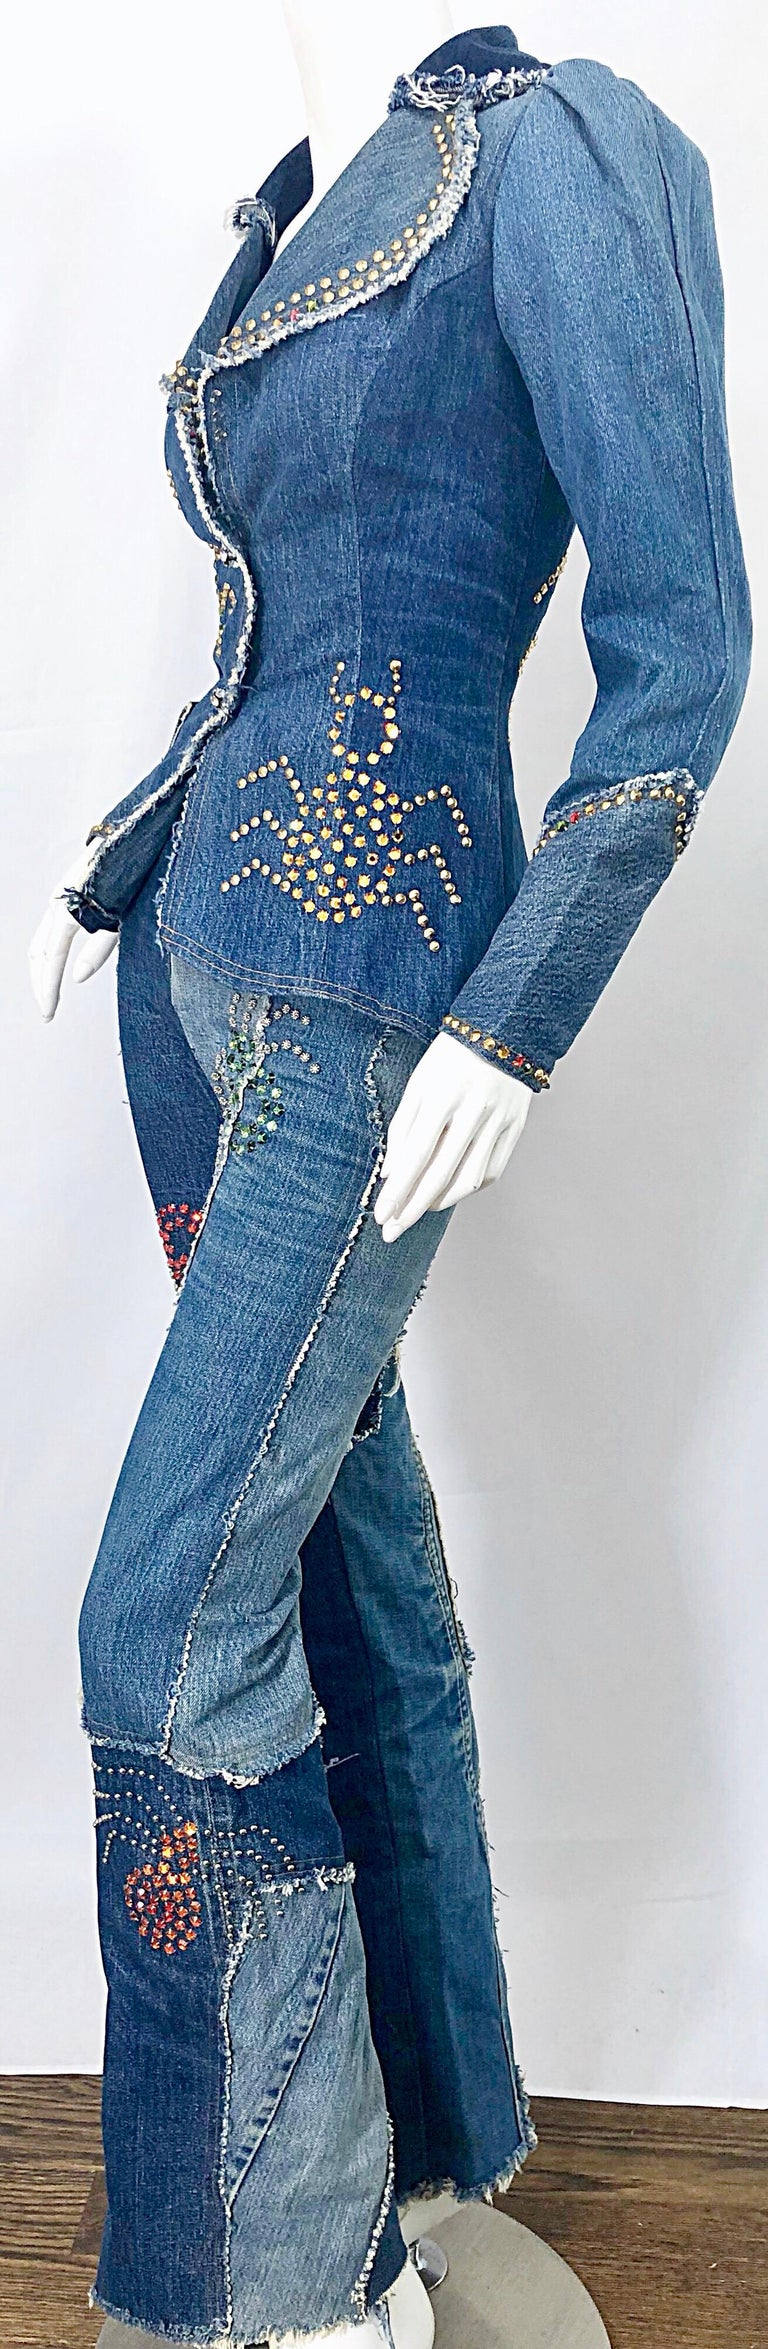 Women's Musuem Piece Love, Melody Sabatasso 1970s Custom Blue Jean Denim Rhinestone Suit For Sale